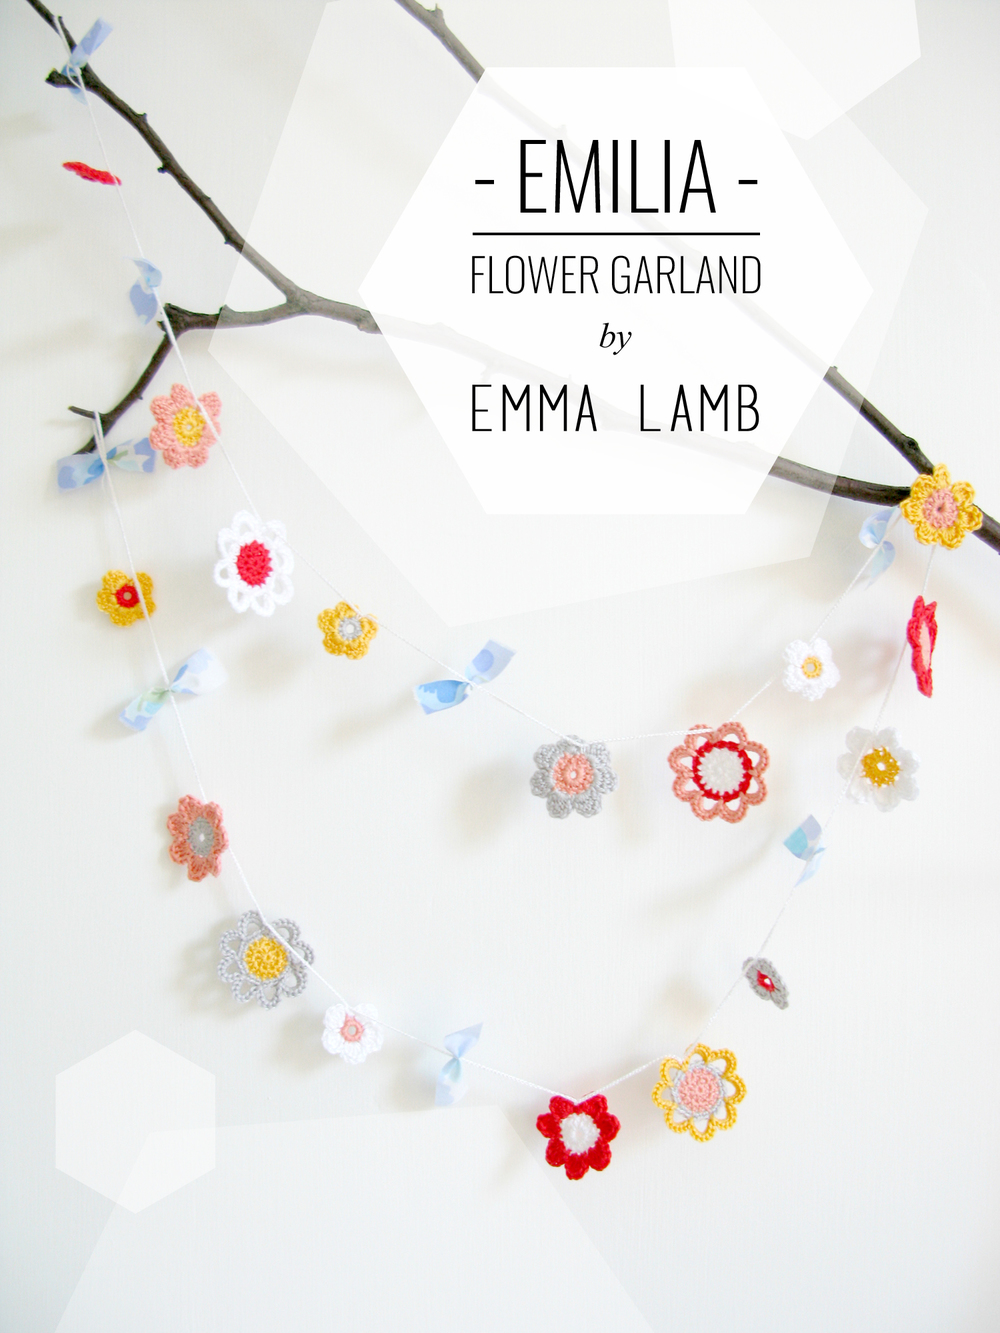 Emilia Flower Garland by Emma Lamb